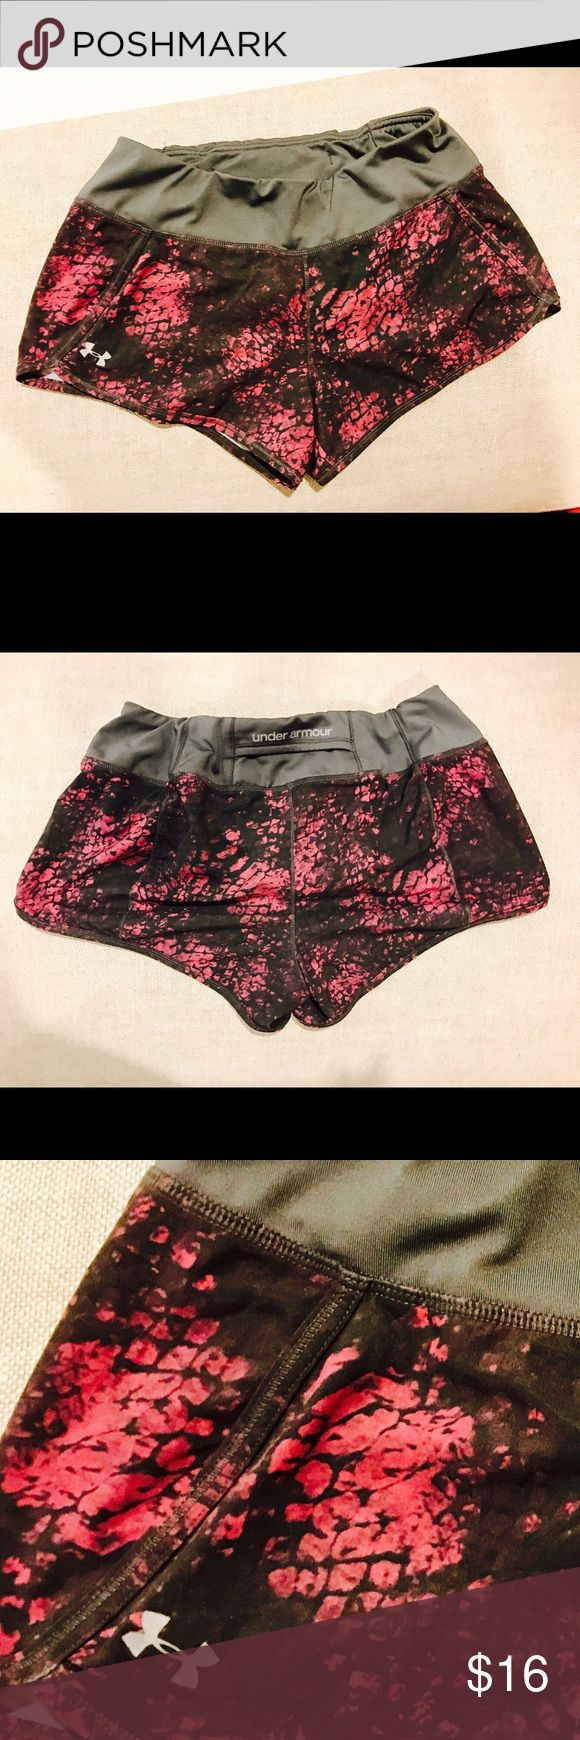 Under Amour Shorts w/ Liner This is a nice pair of Under Amour heat gear shorts size small with a built in liner and back pocket. They are a fun patten and in very good condition! Under Armour Shorts